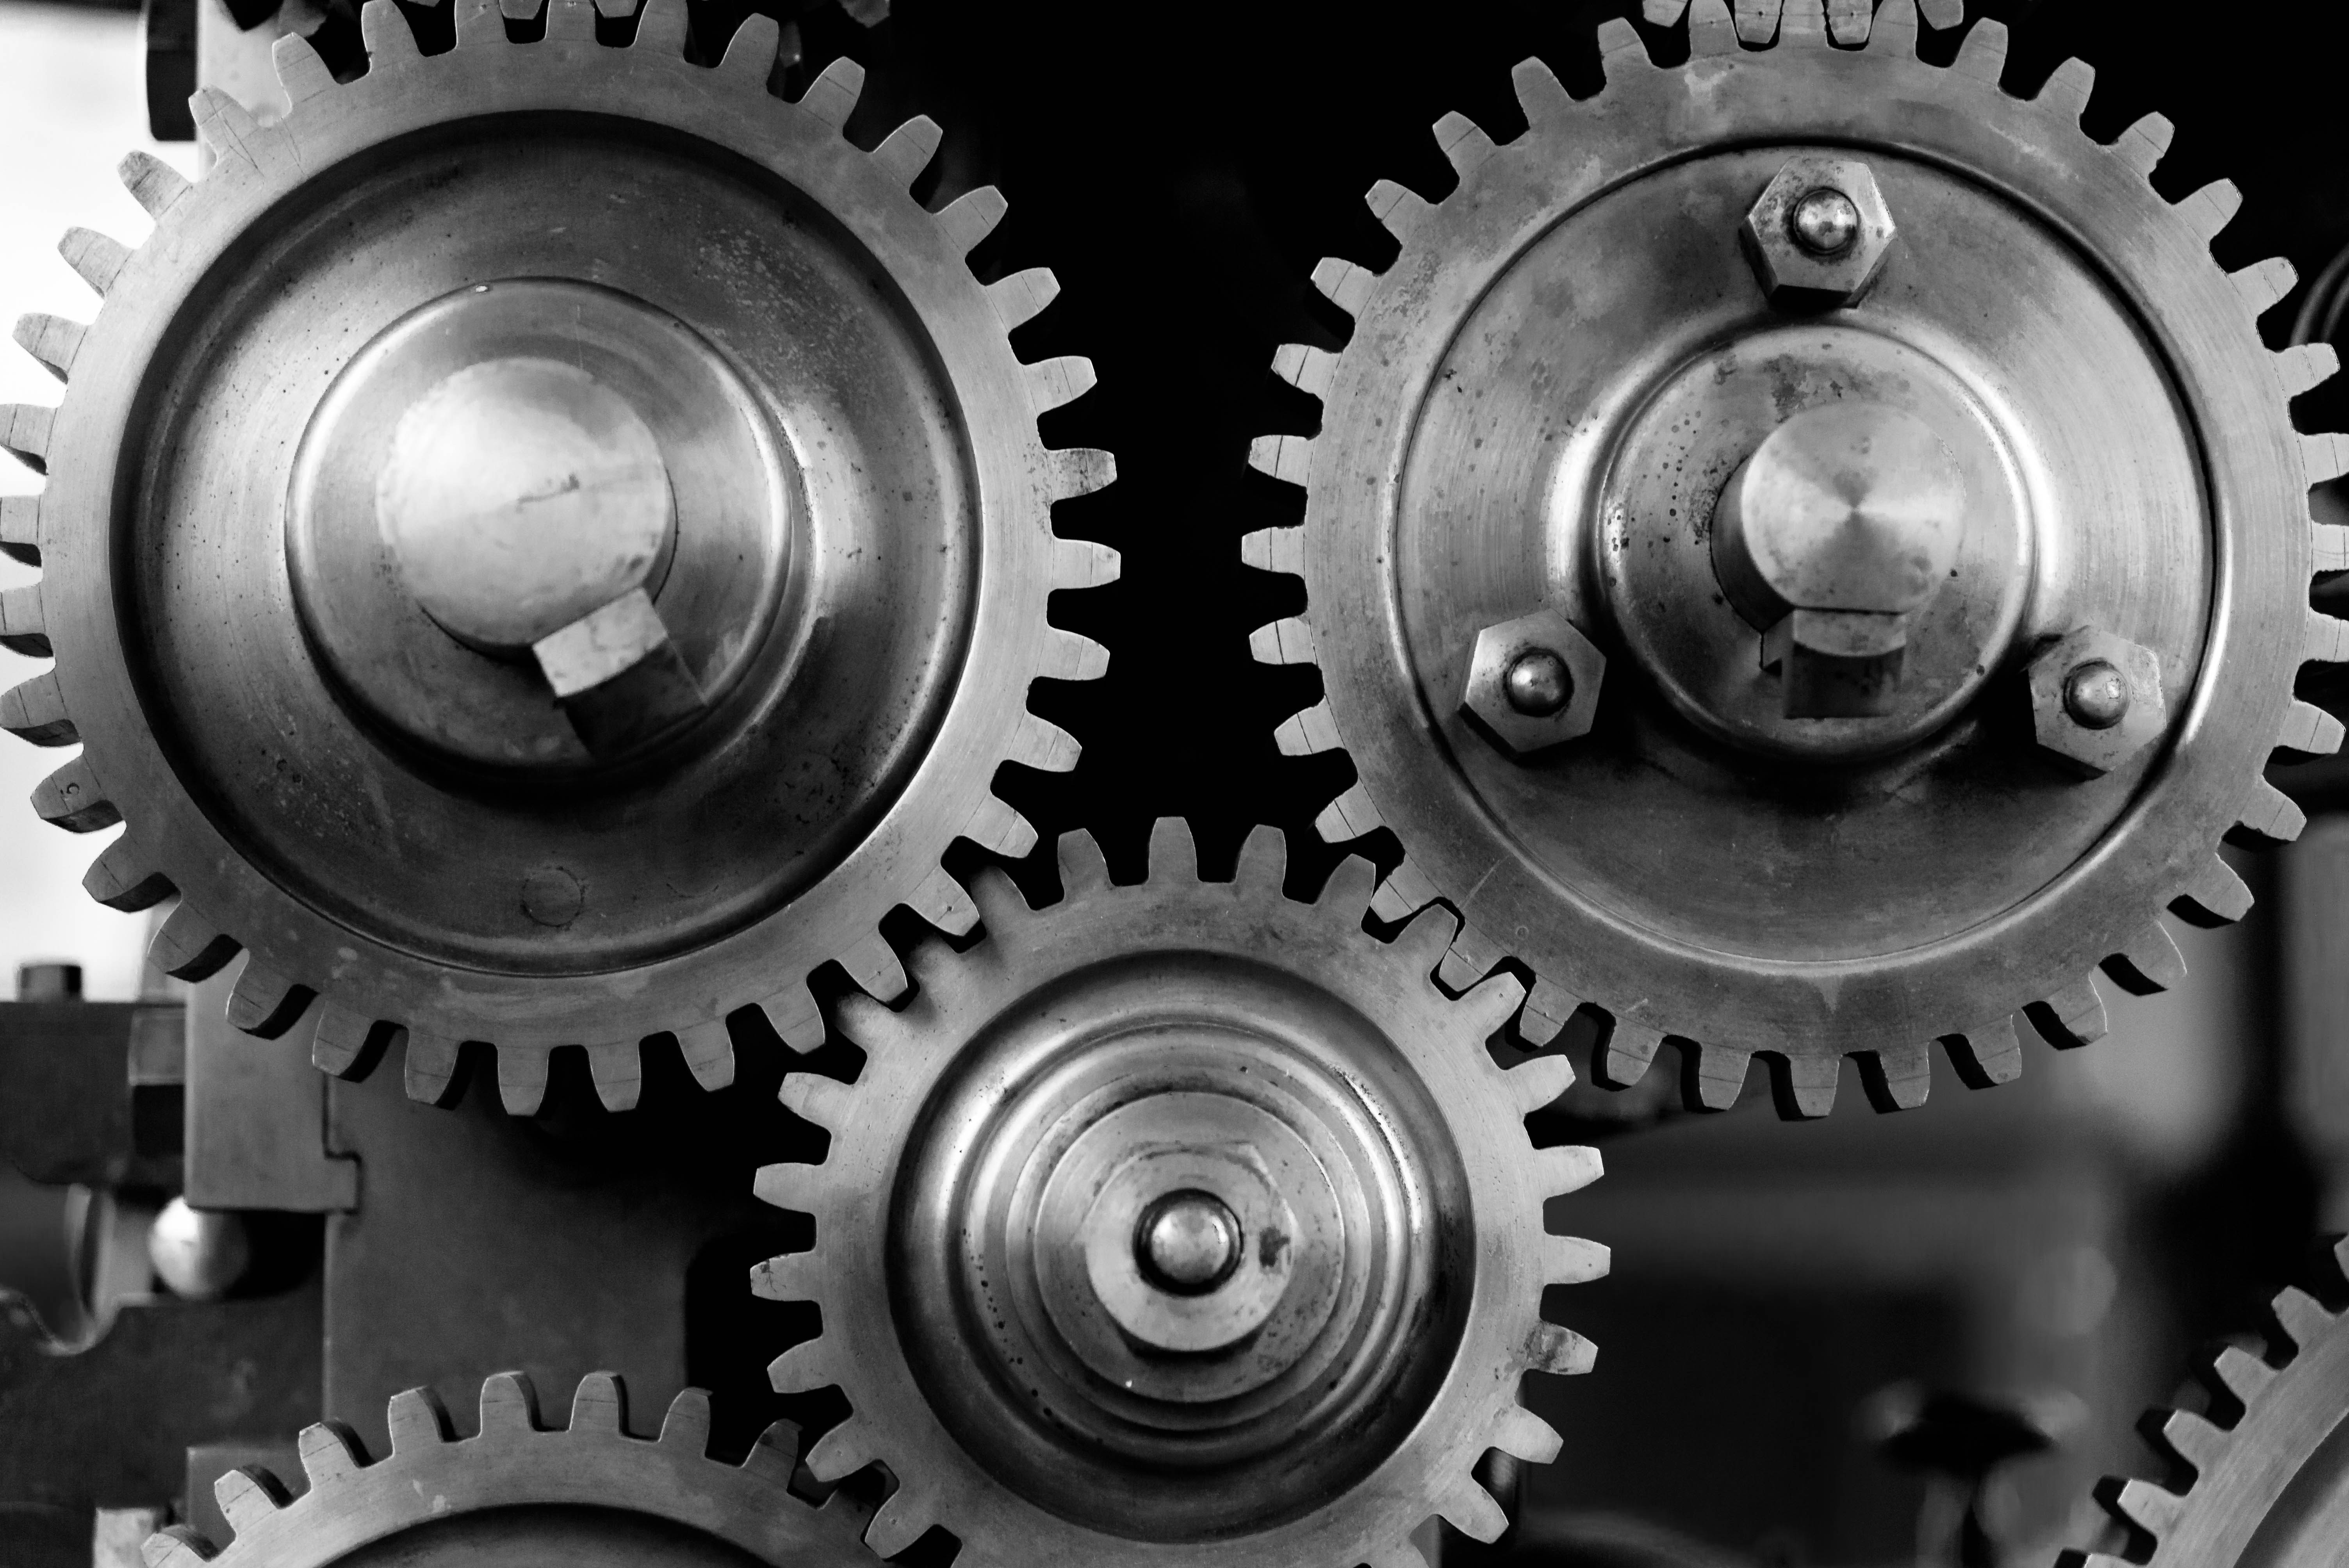 100 Great Gears Photos 183 Pexels 183 Free Stock Photos